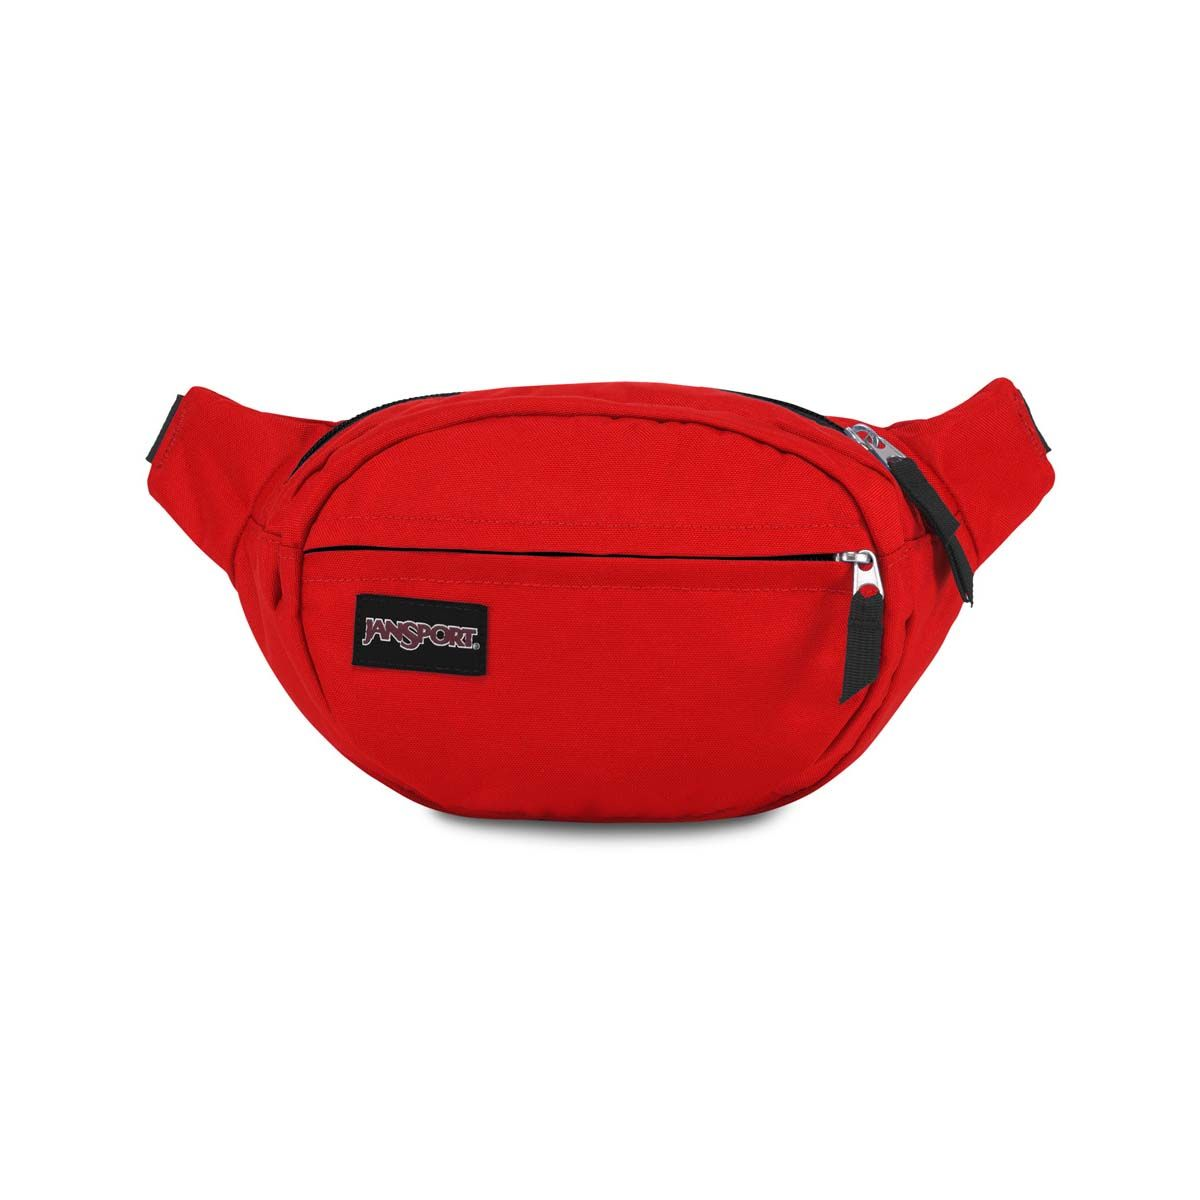 JanSport Fifth Ave Fanny Pack in Red Tape